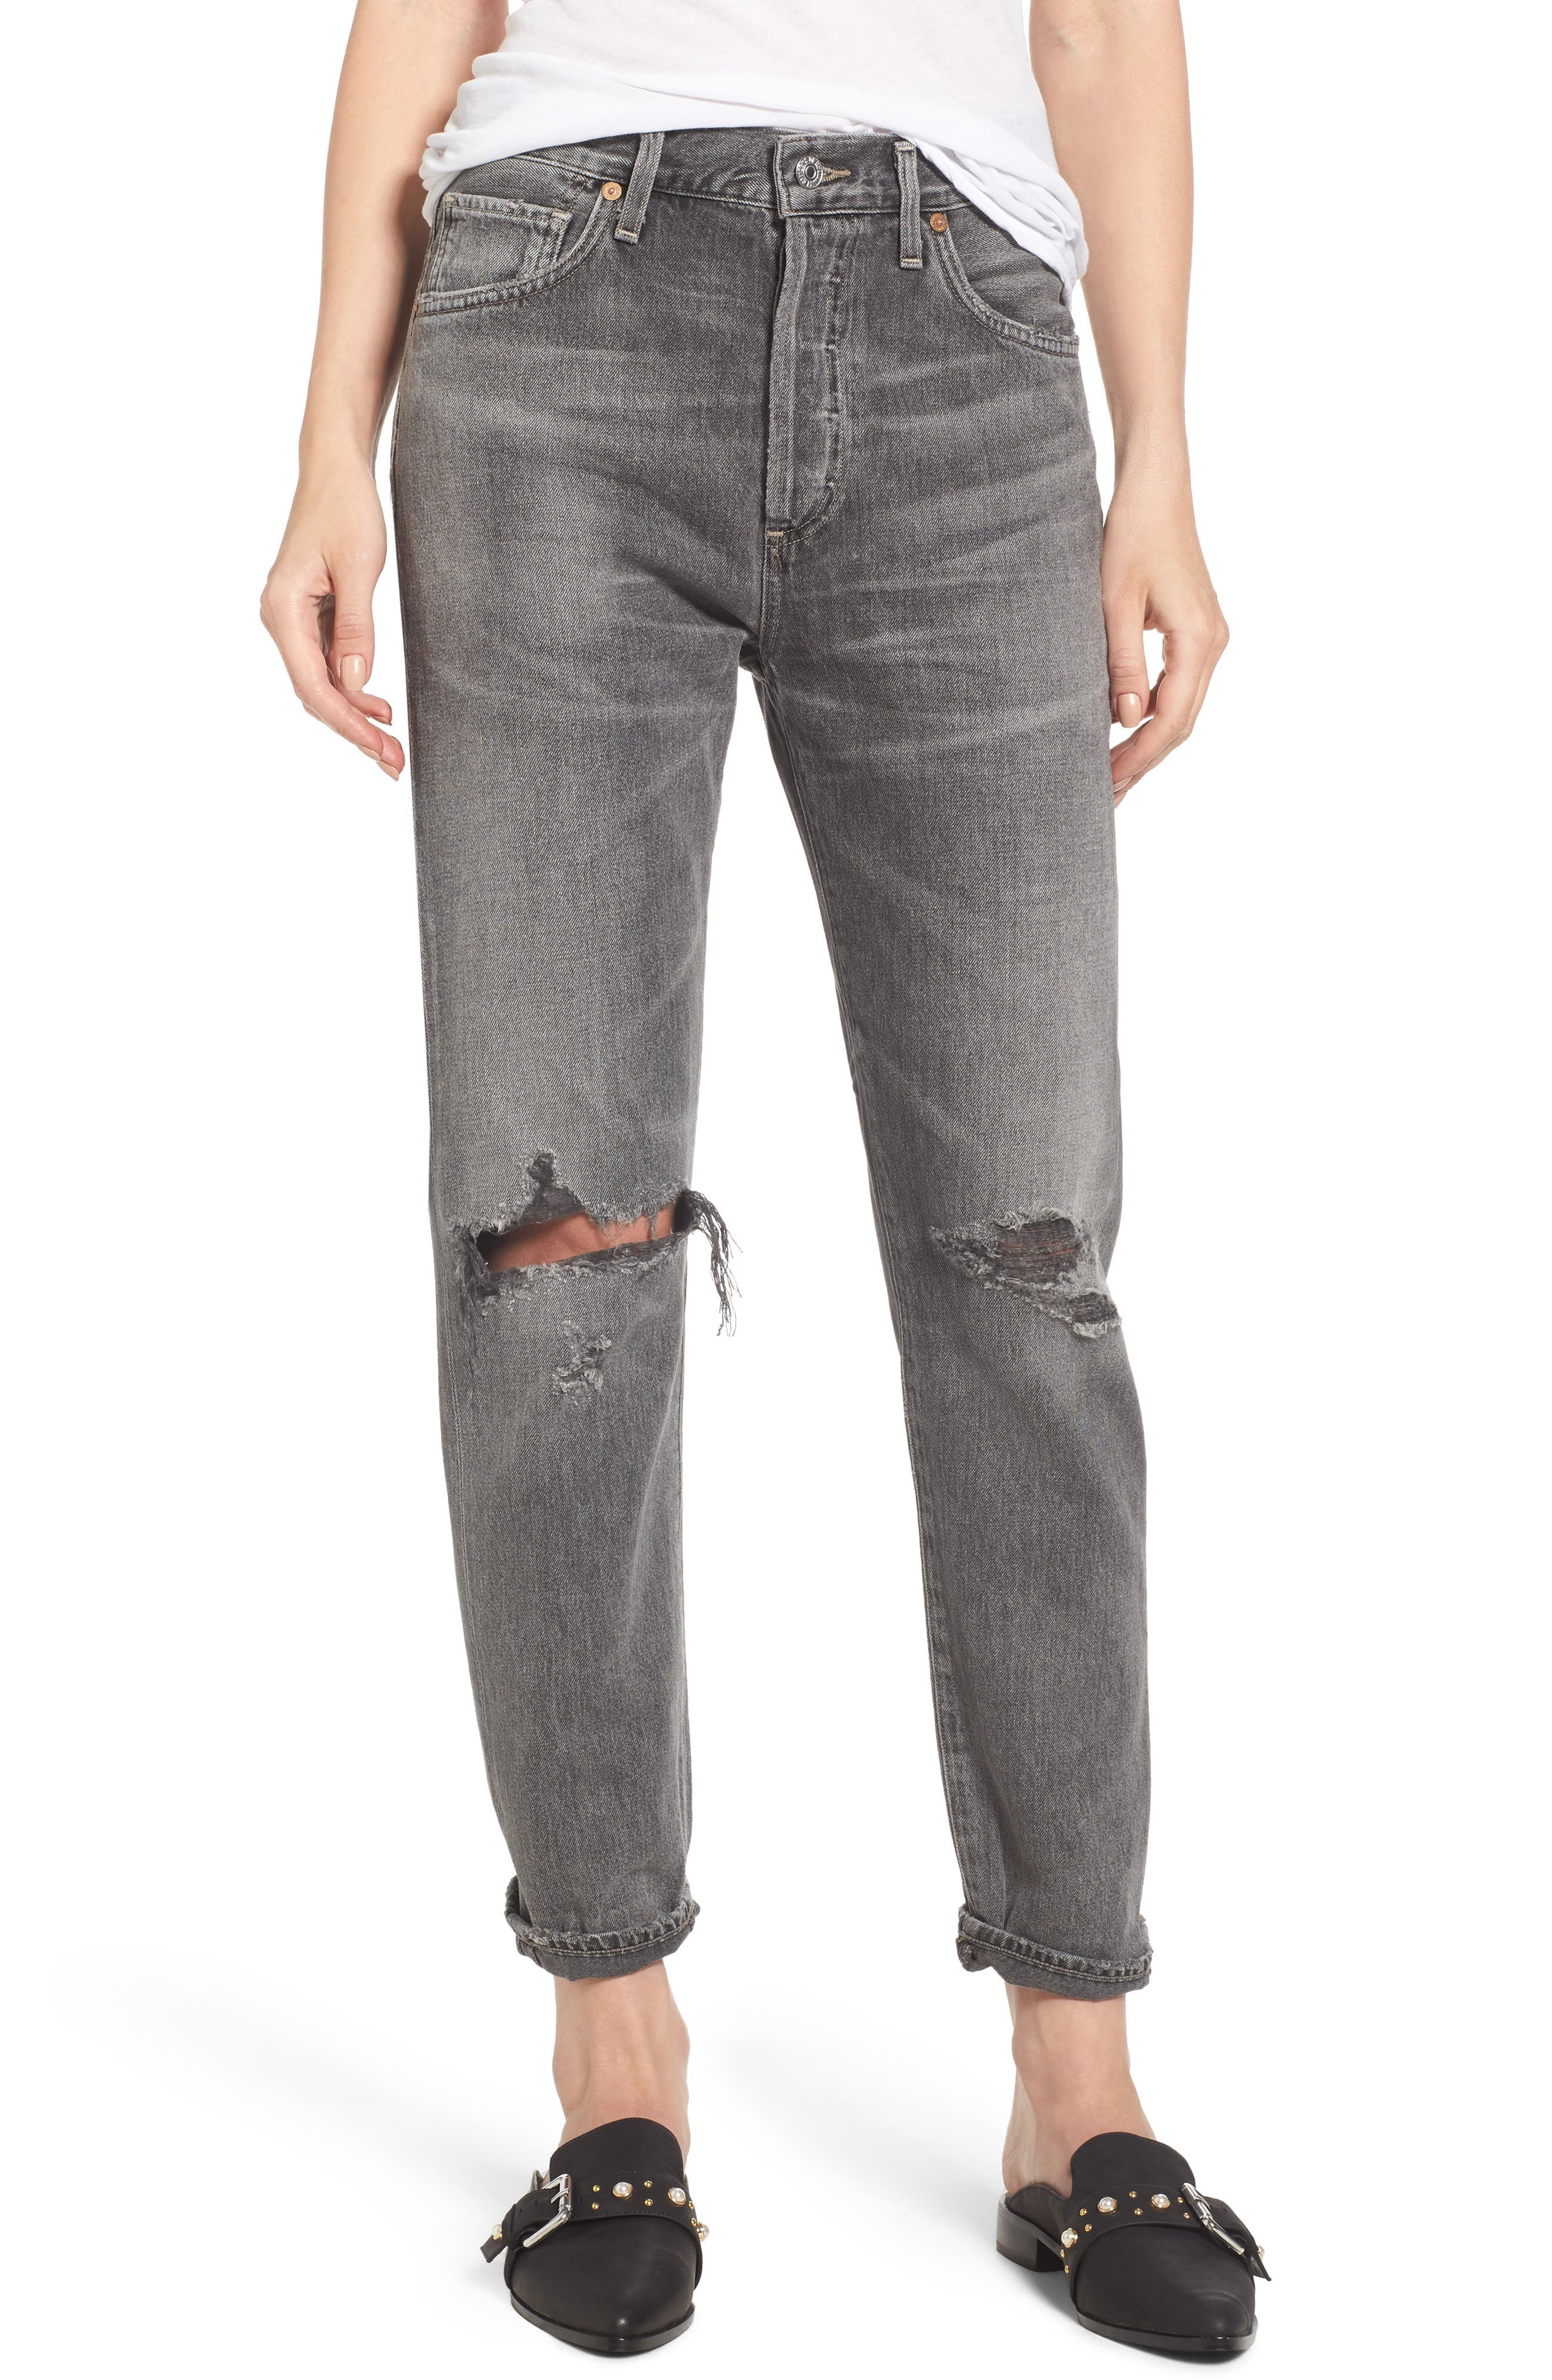 Main Image - Citizens of Humanity Liya High Waist Boyfriend Jeans (Extreme)